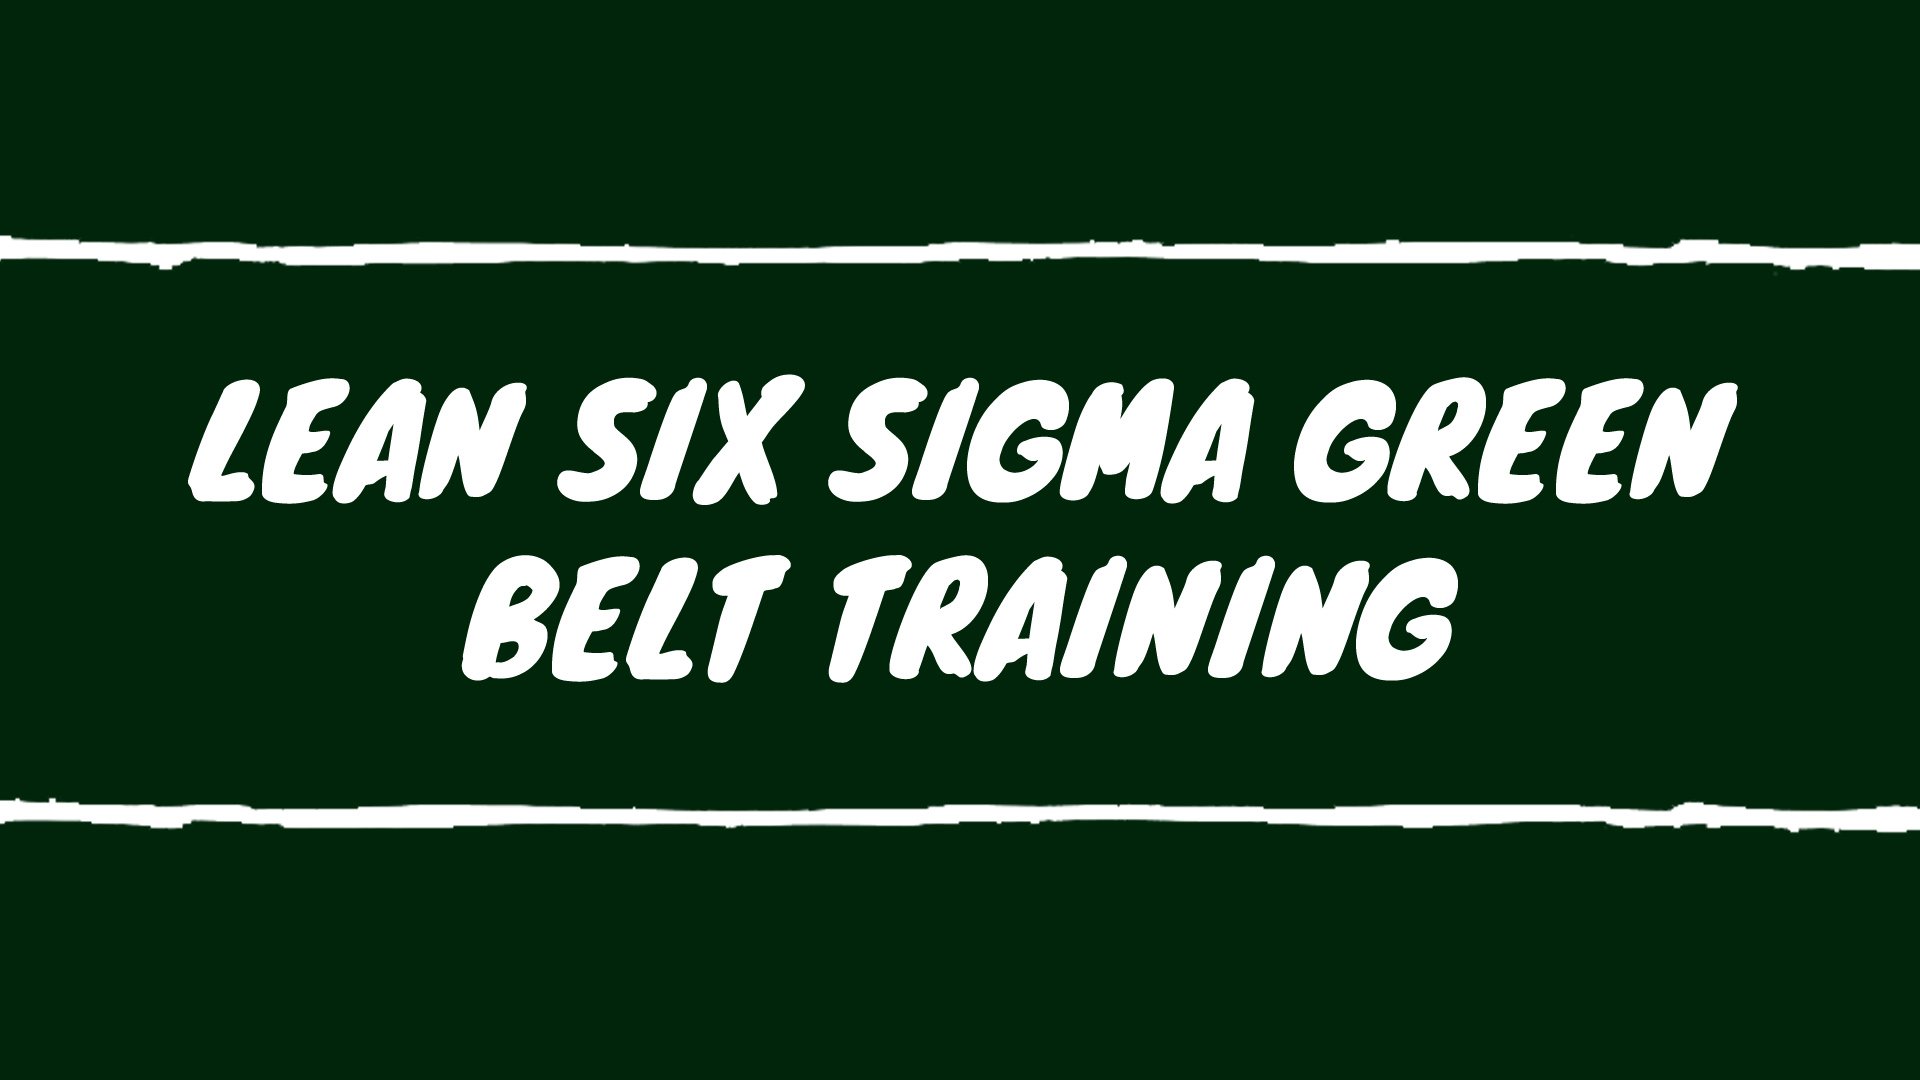 38th Lean Six Sigma Green Belt Certification Program